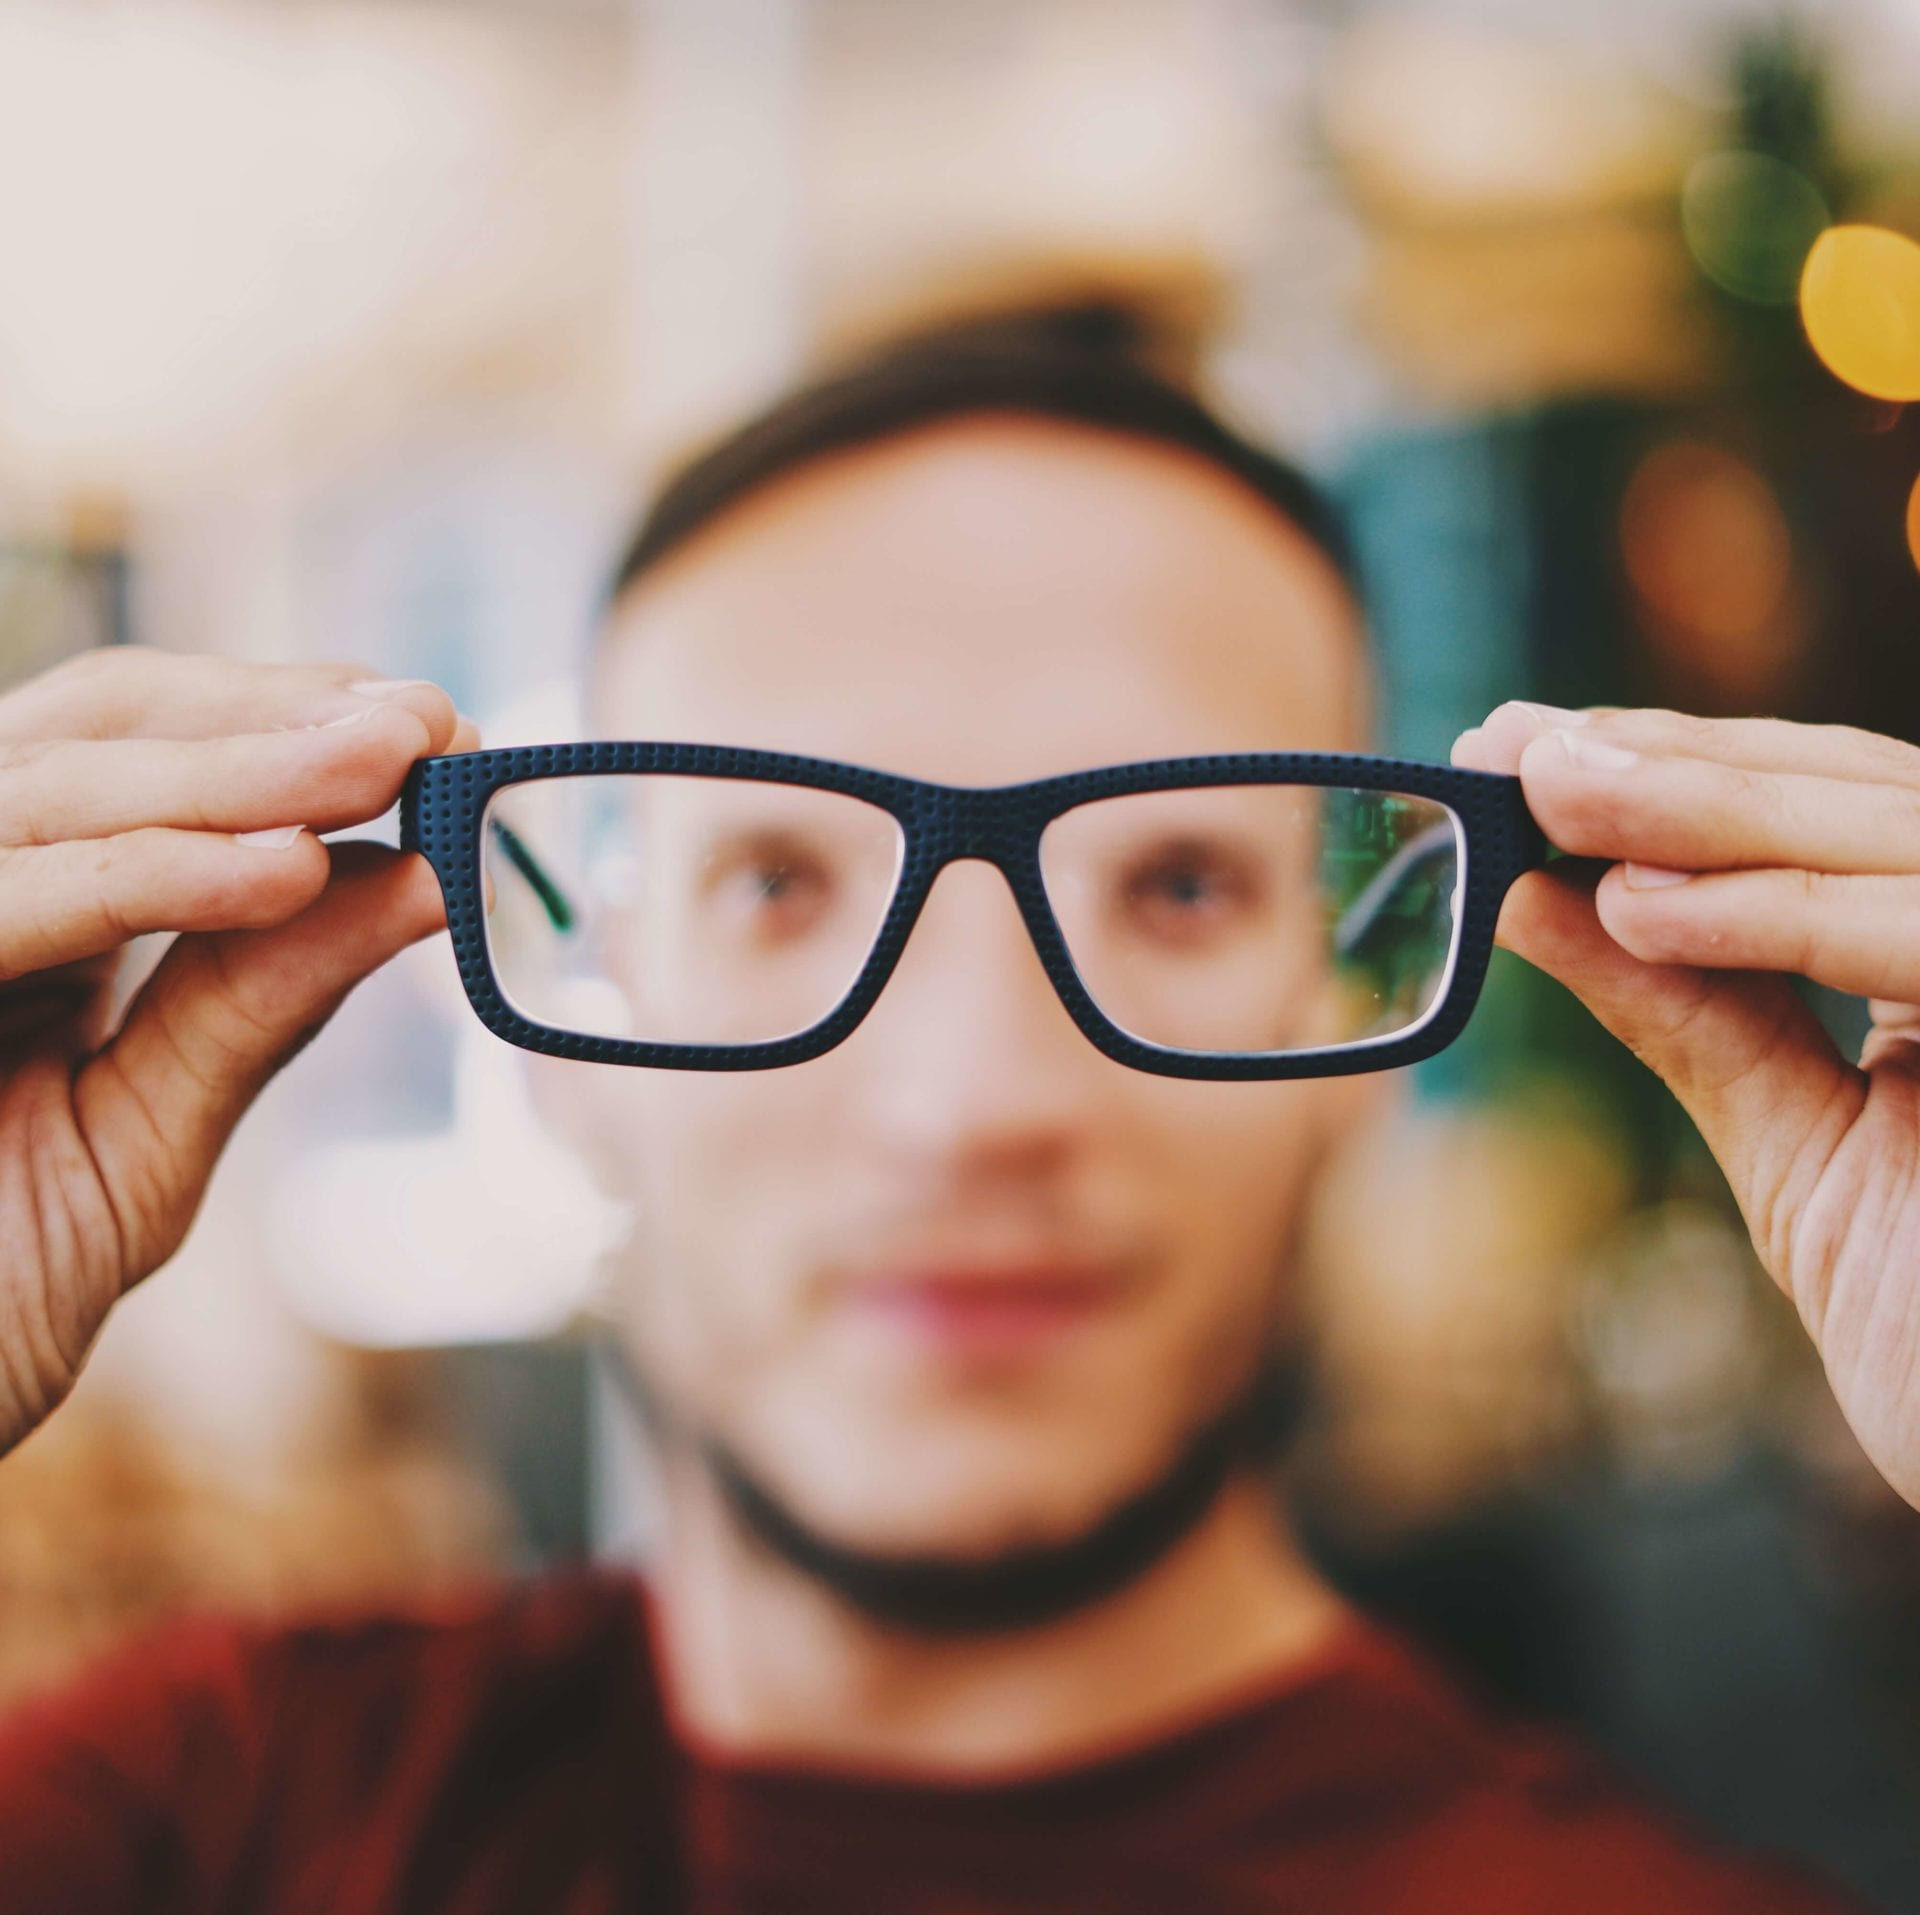 man looking through glasses